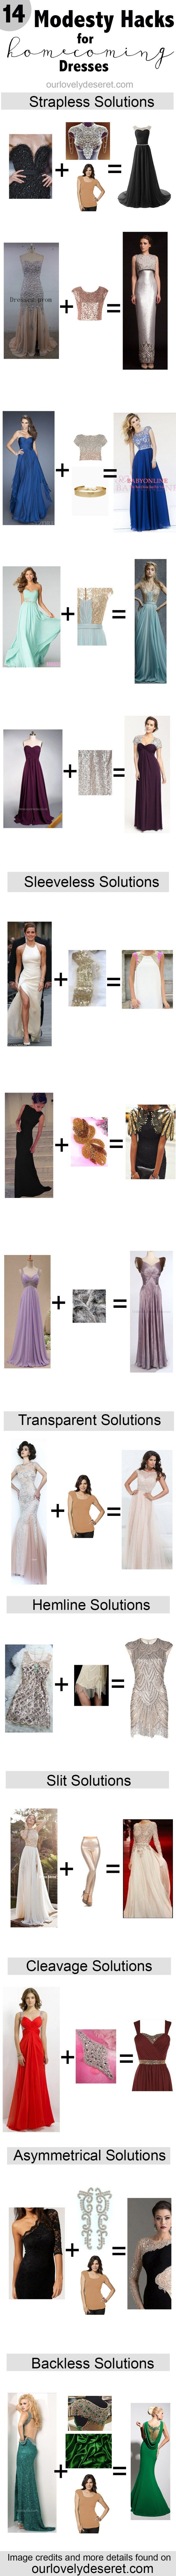 How to Alter Your homecoming dress to be modest! Gold mine! I love modesty hacks!